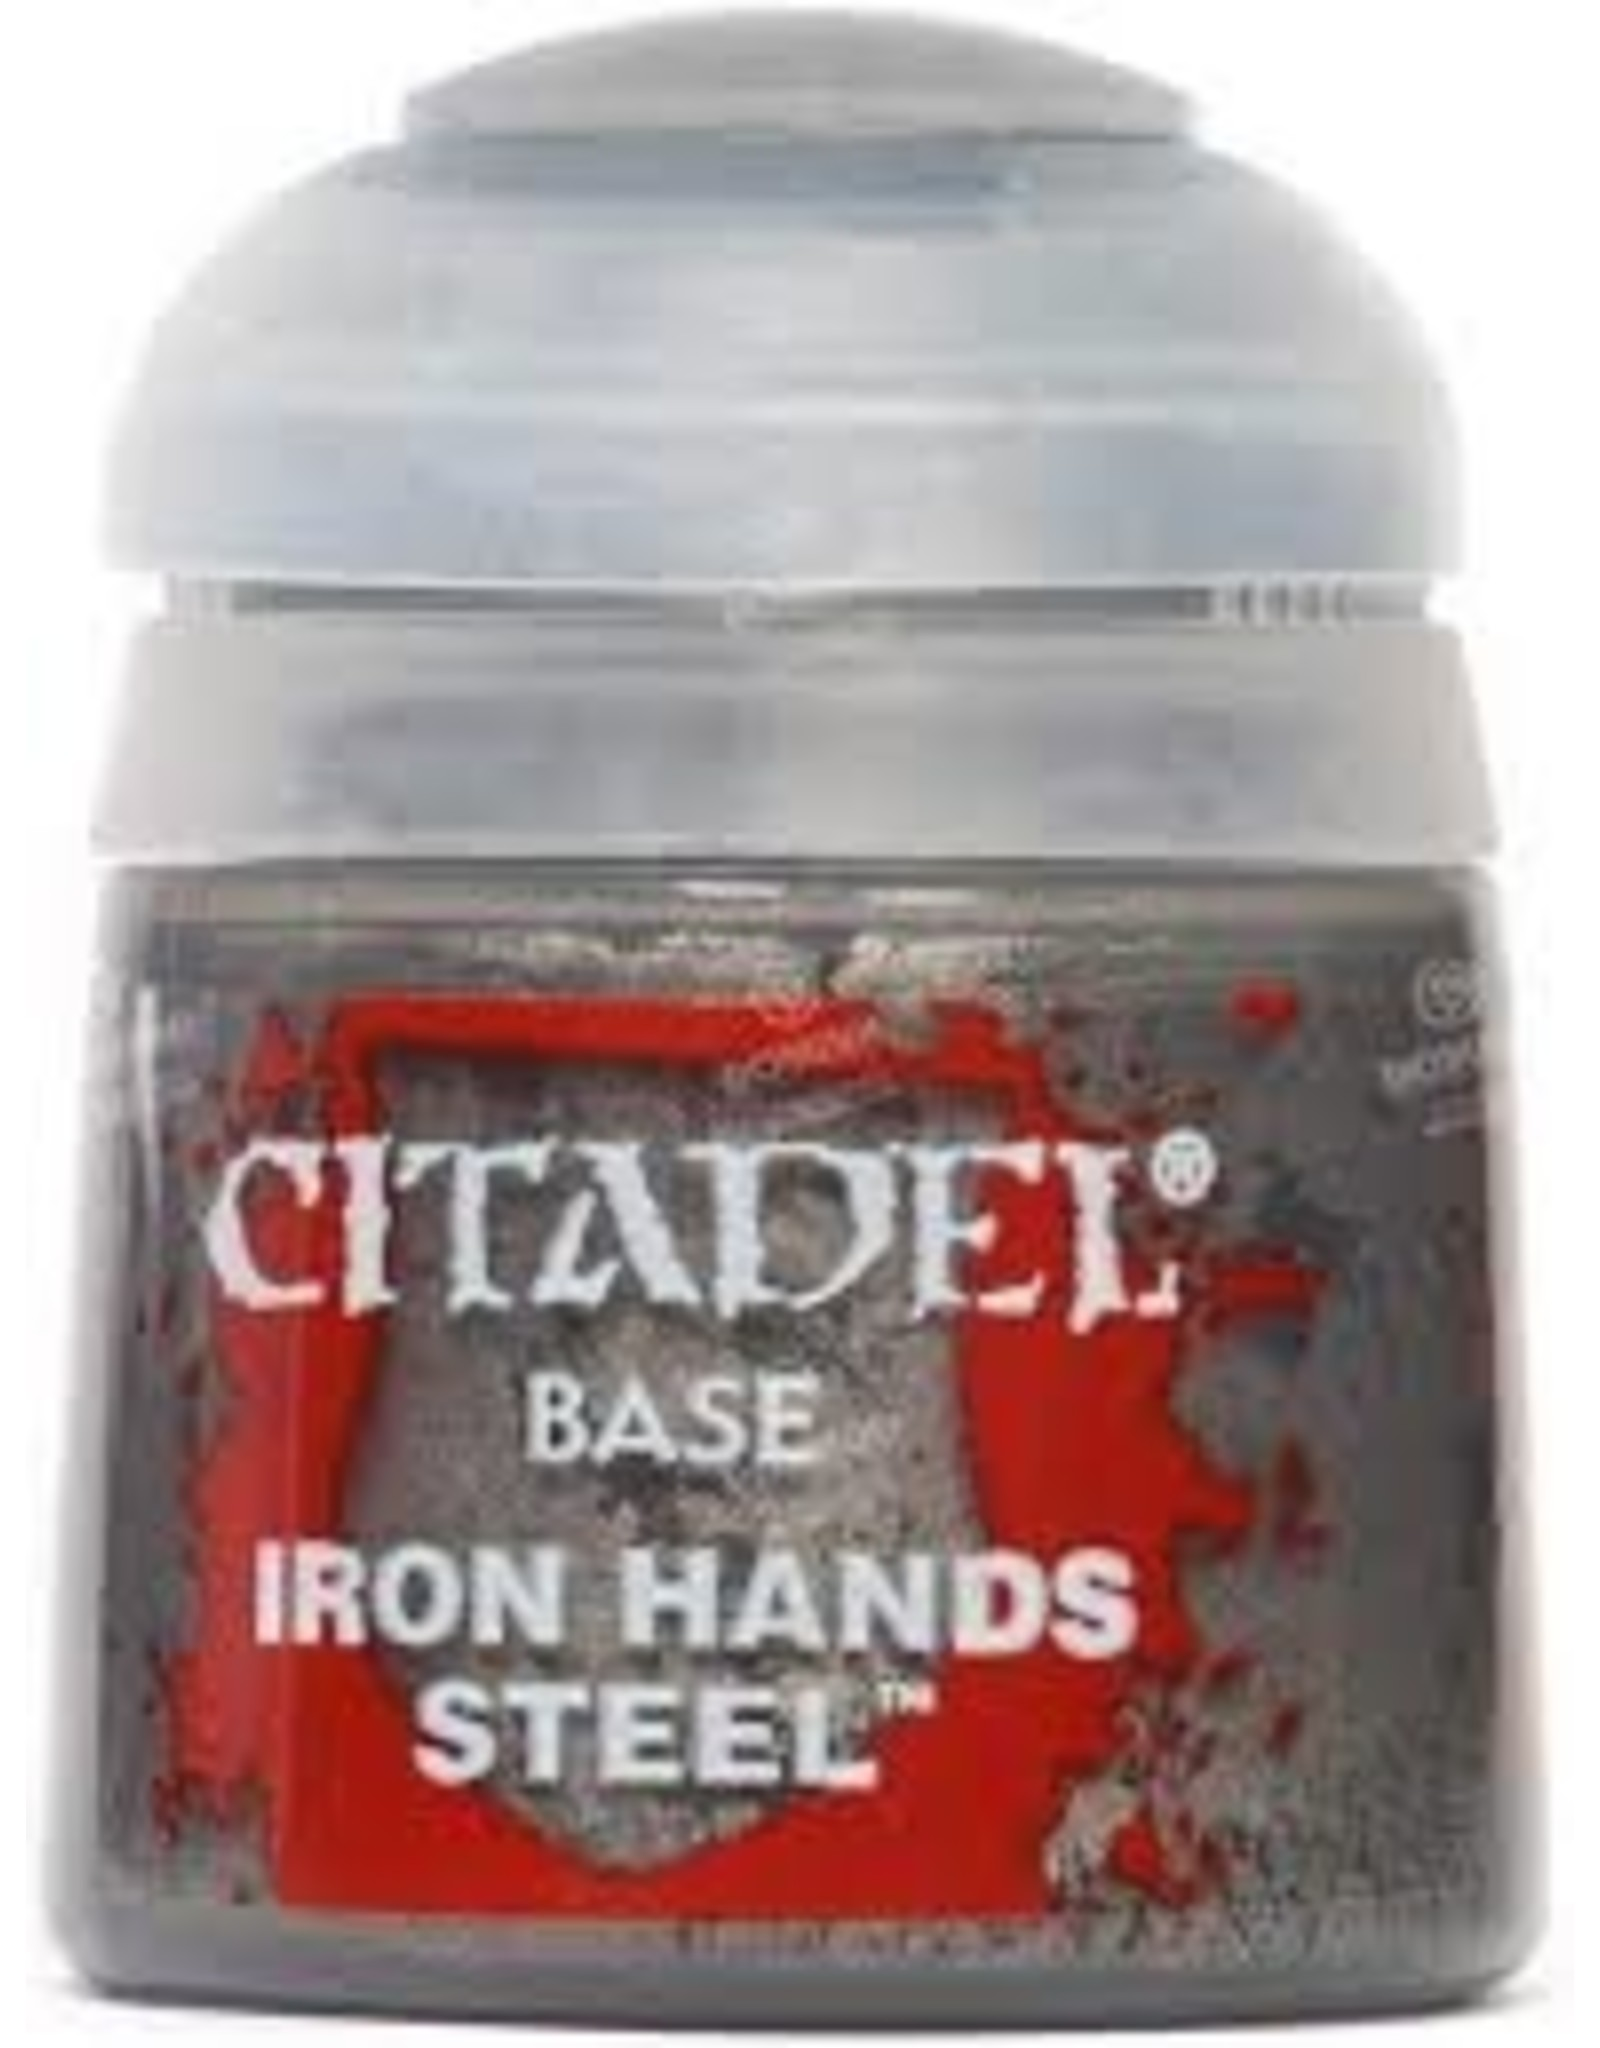 Citadel Citadel Paints: Base - Iron Hands Steel